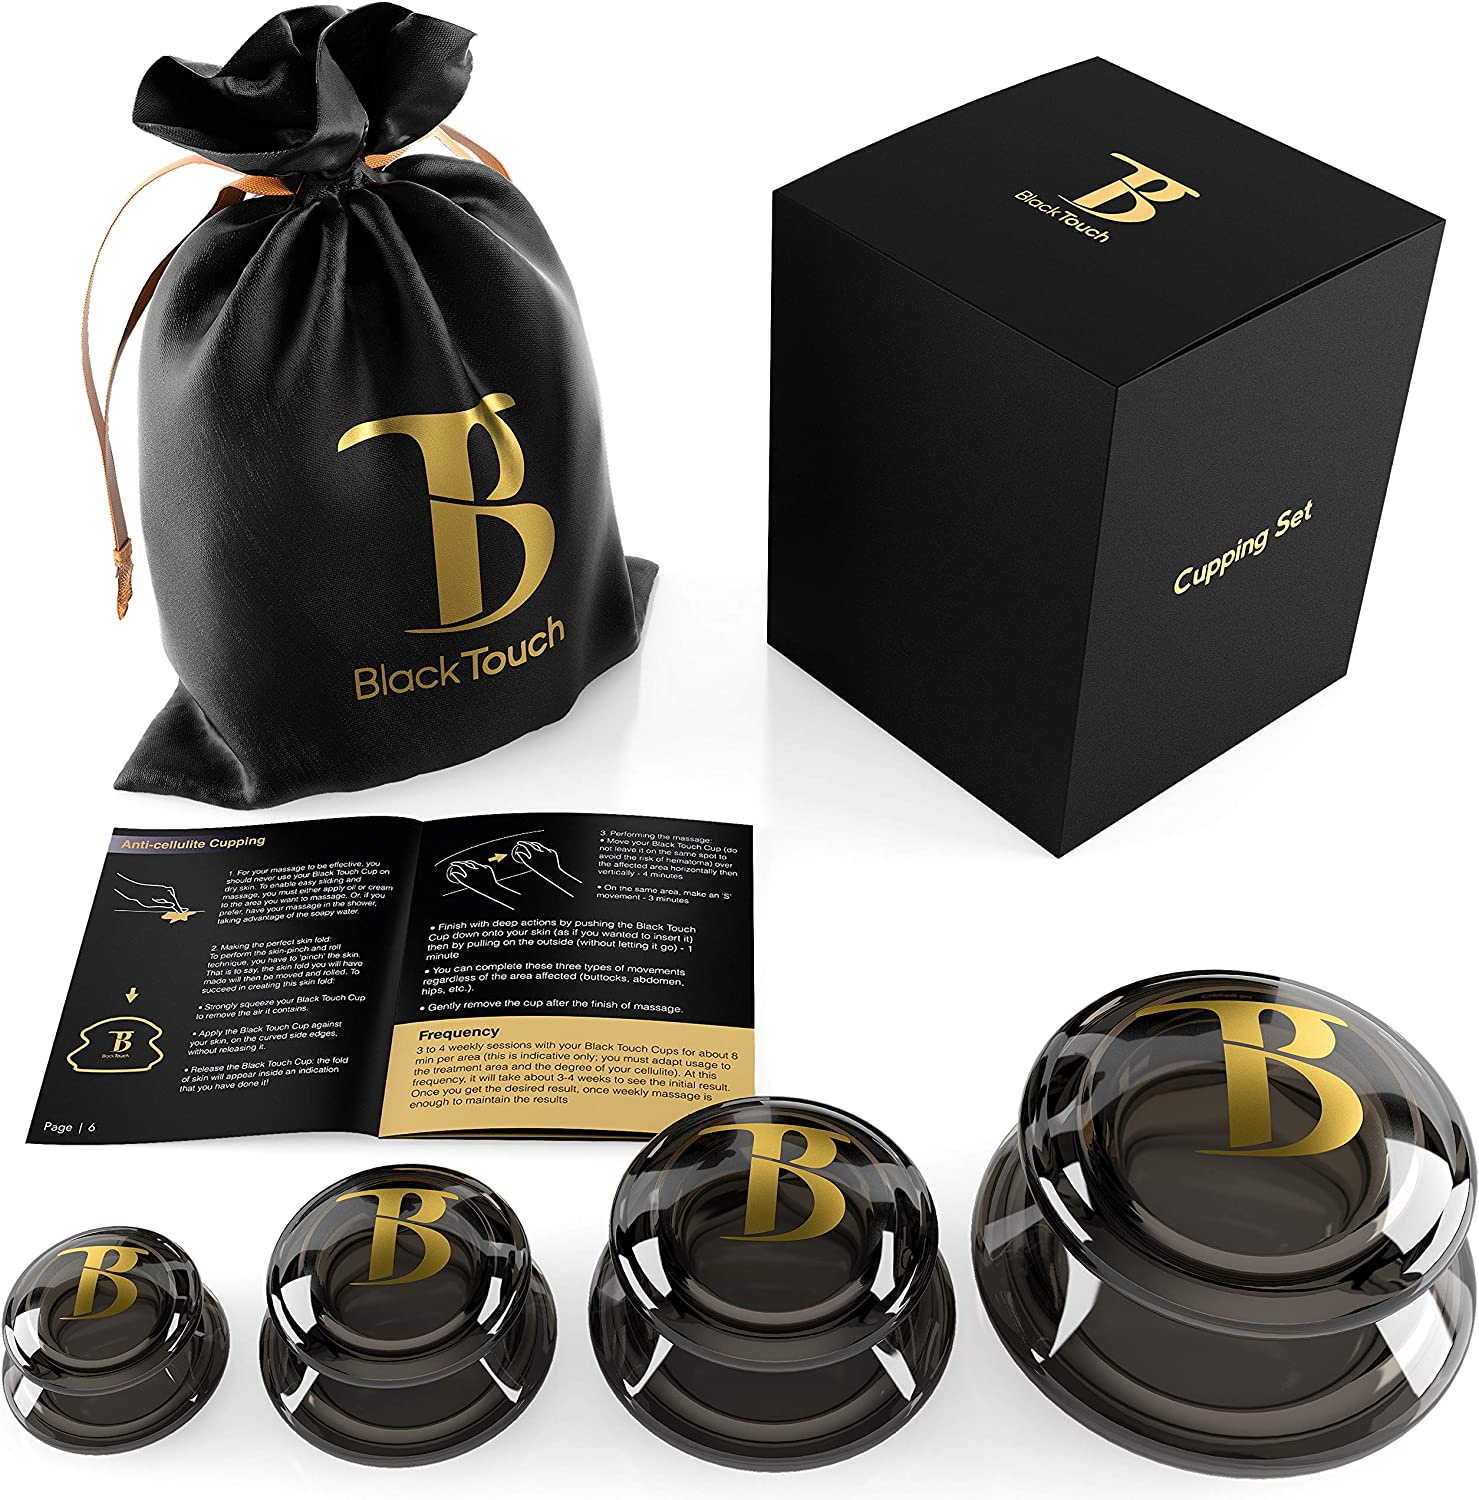 Cupping Therapy Set by BlackTouch